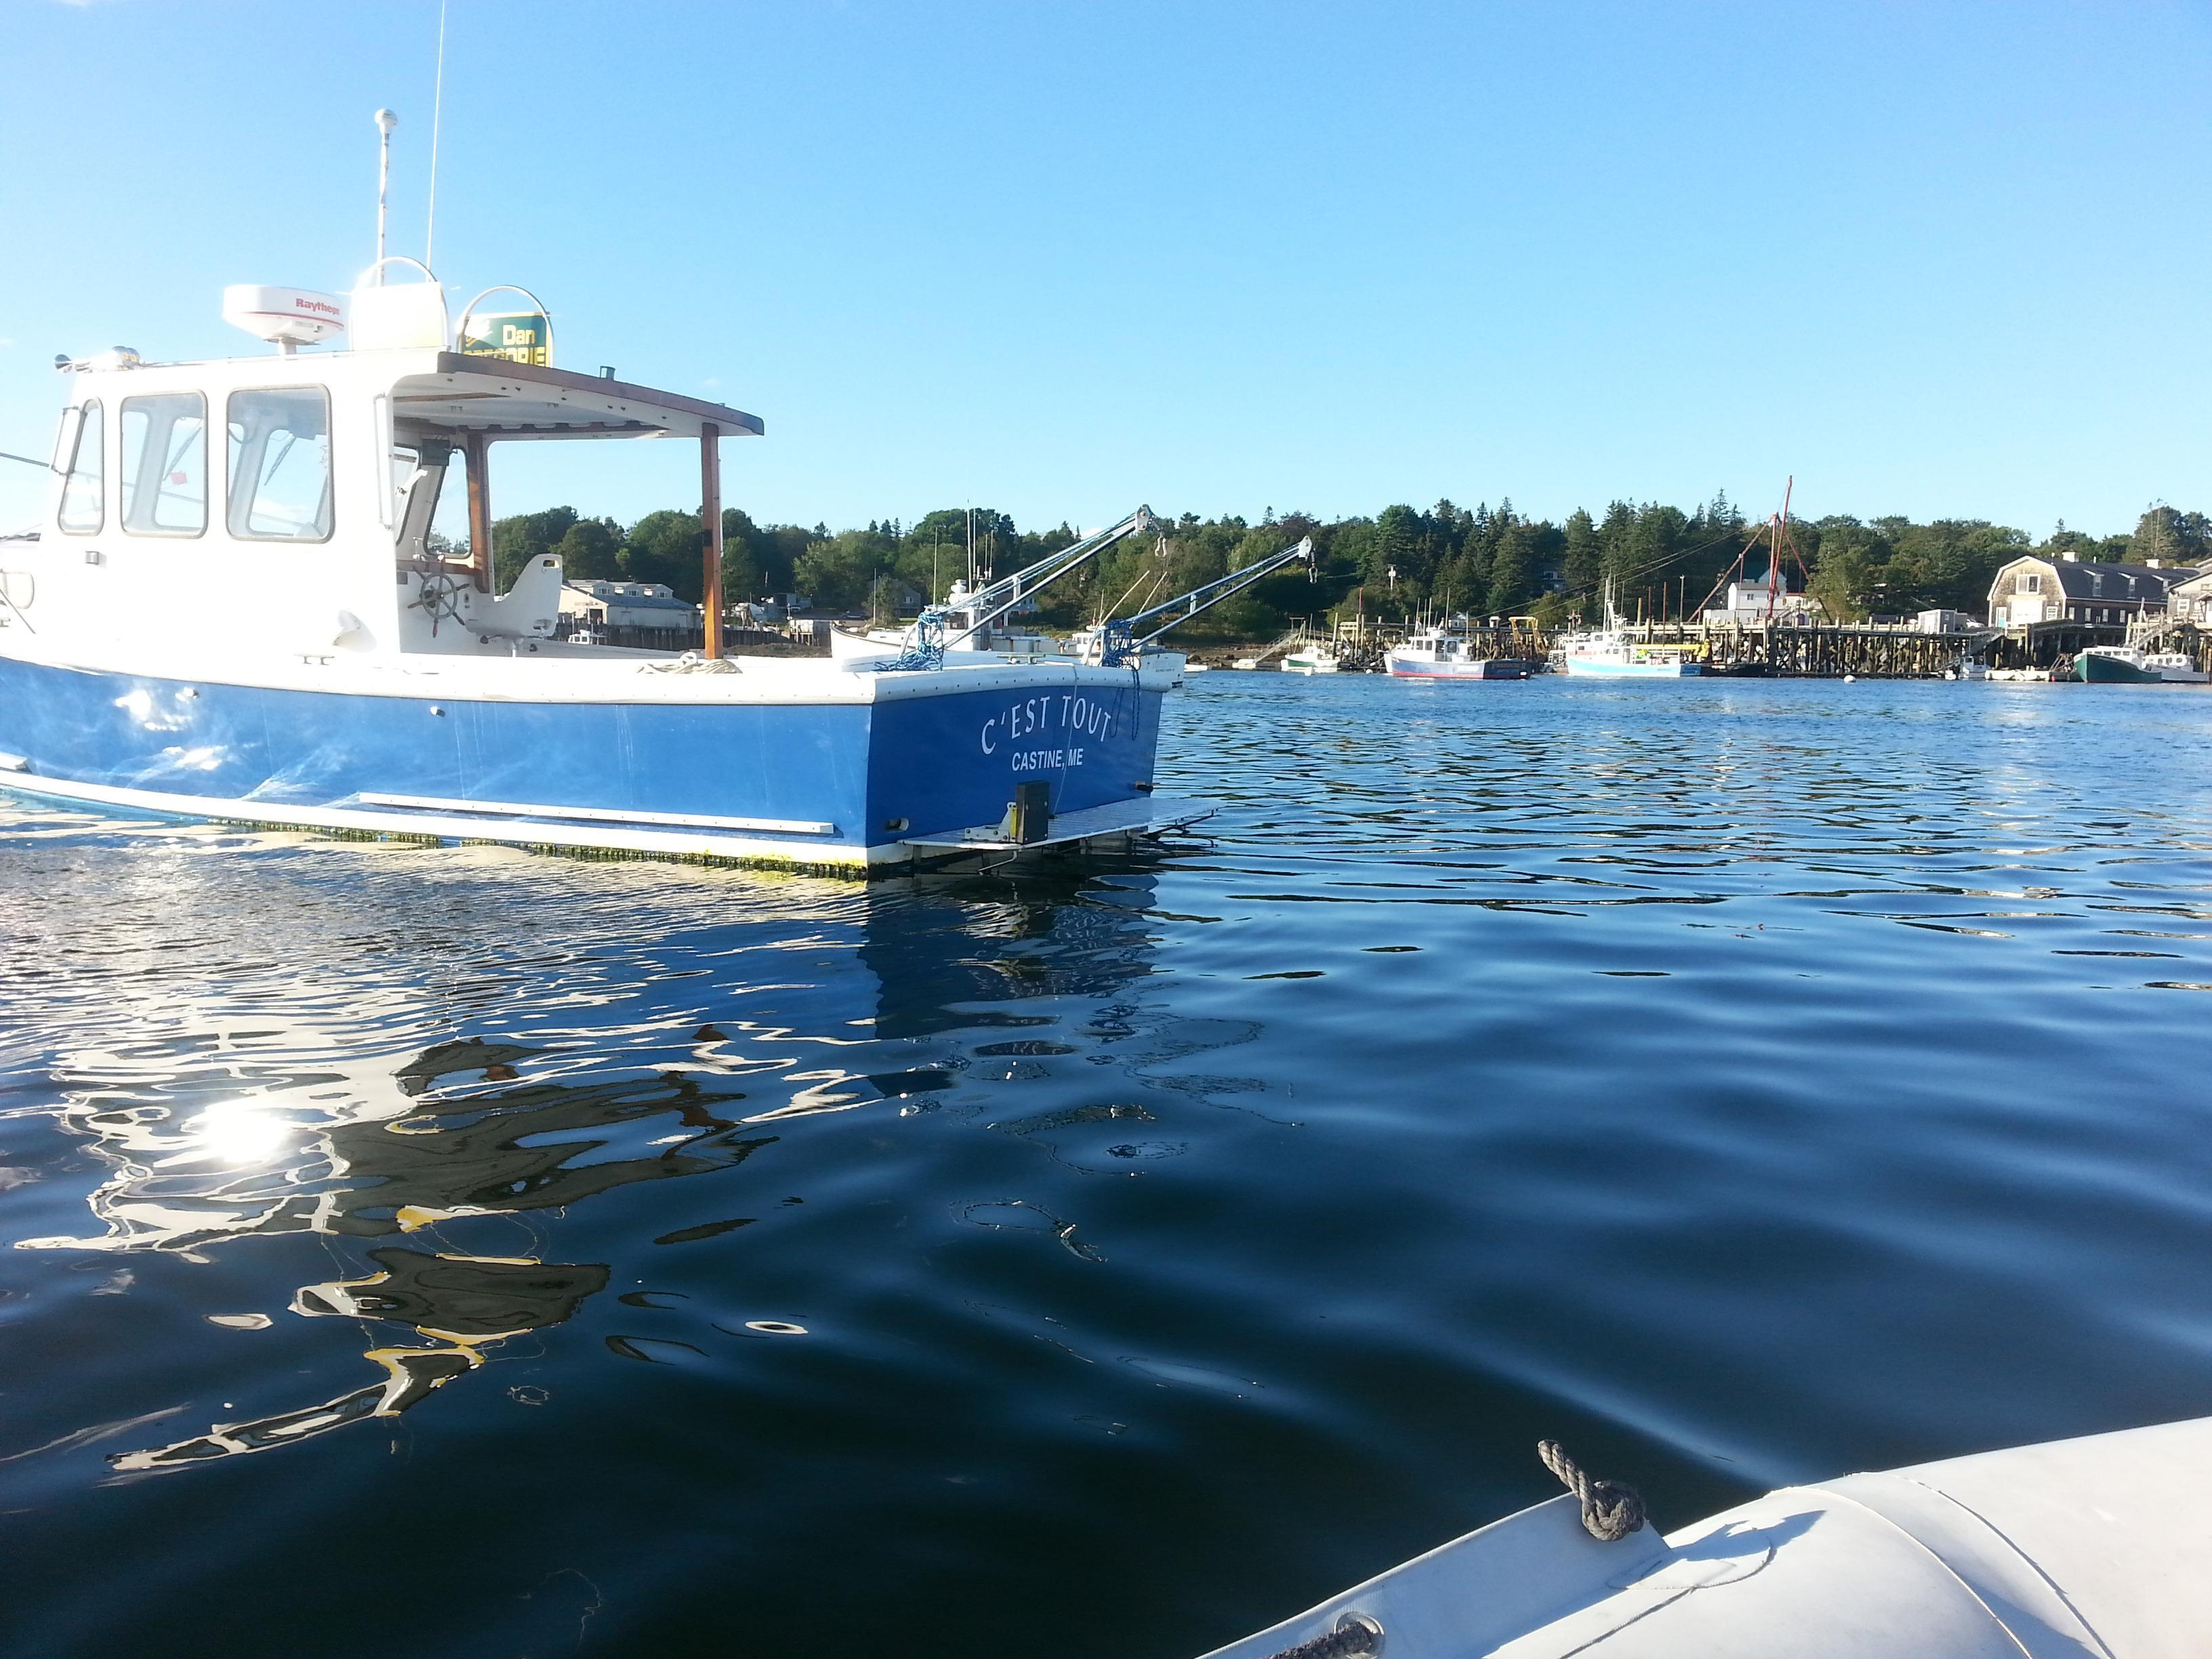 Blue Hill Marine (BHM) Lobster Boat Cruiser, Southwest Harbor